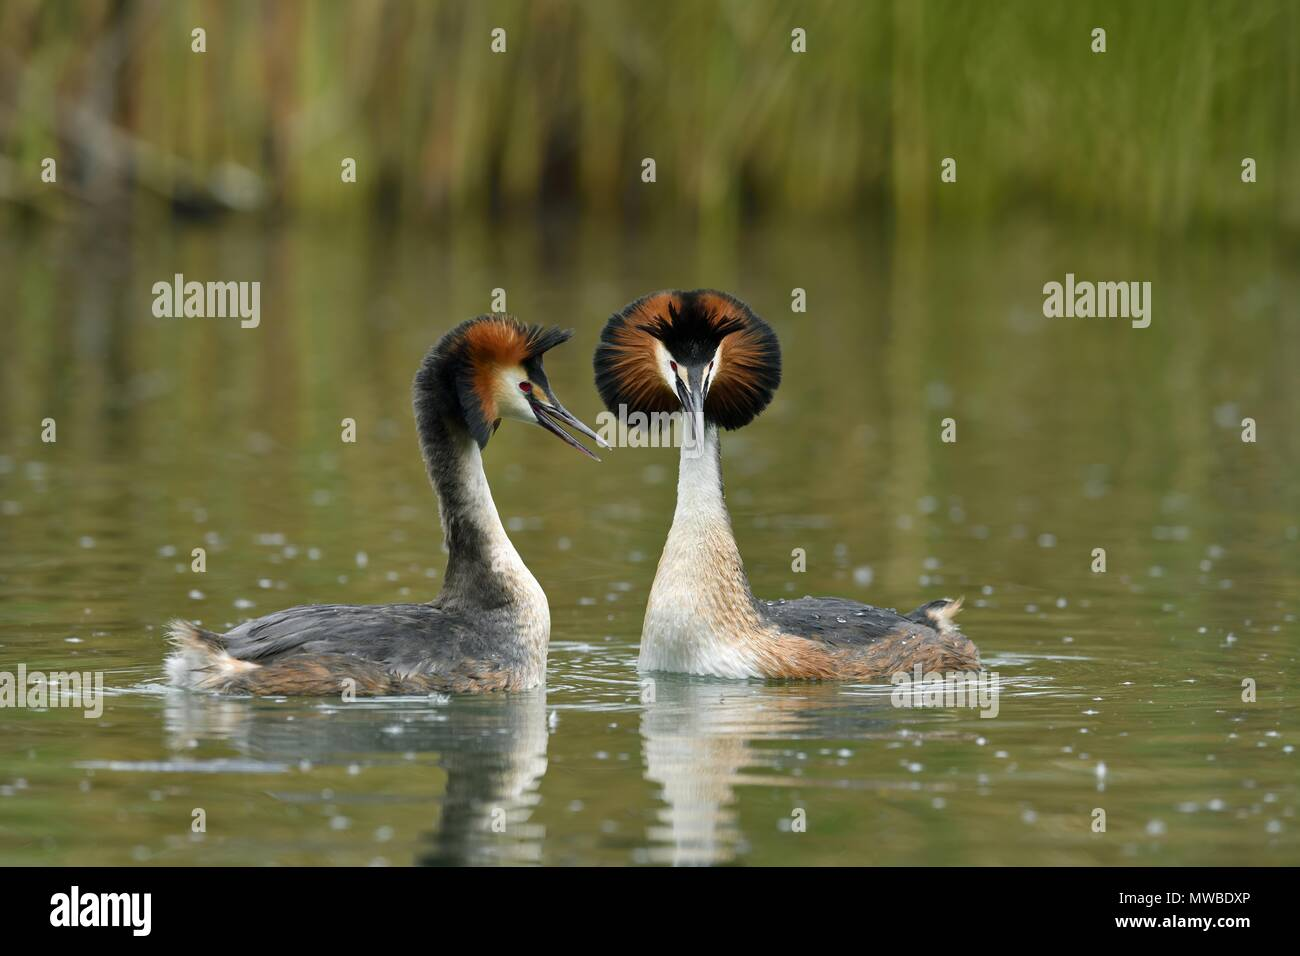 Great crested grebes (Podiceps cristatus), animal couple in the water, courtshipping, Lake Lucerne, Canton Lucerne, Switzerland Stock Photo